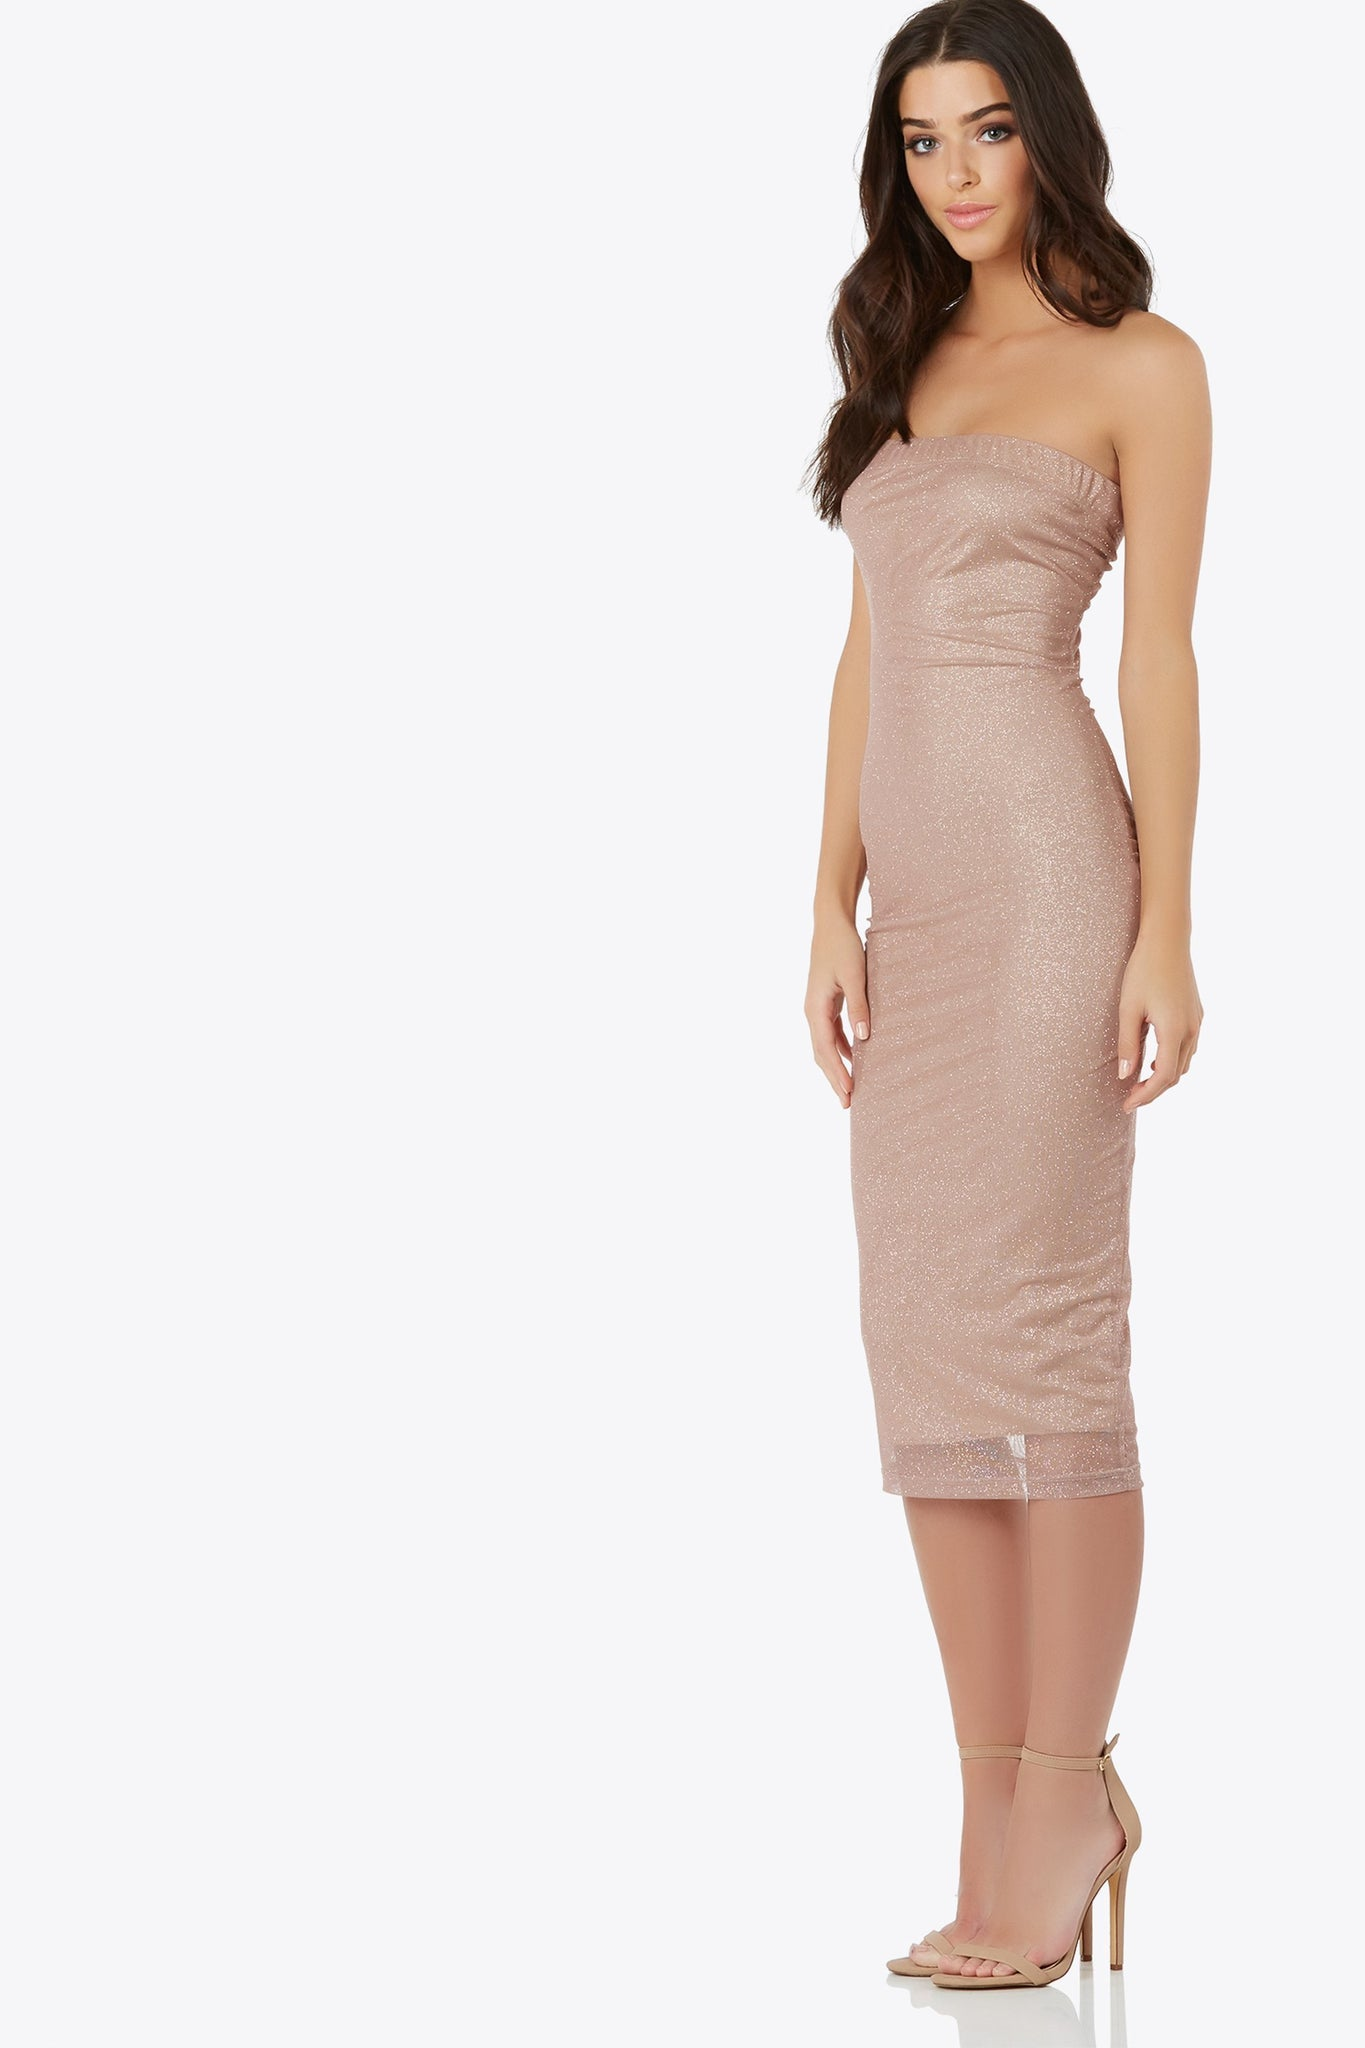 Stay out all night in this sheer strapless midi dress with glitter accents. Fully lined with elastic band on top hem for a comfort fit.